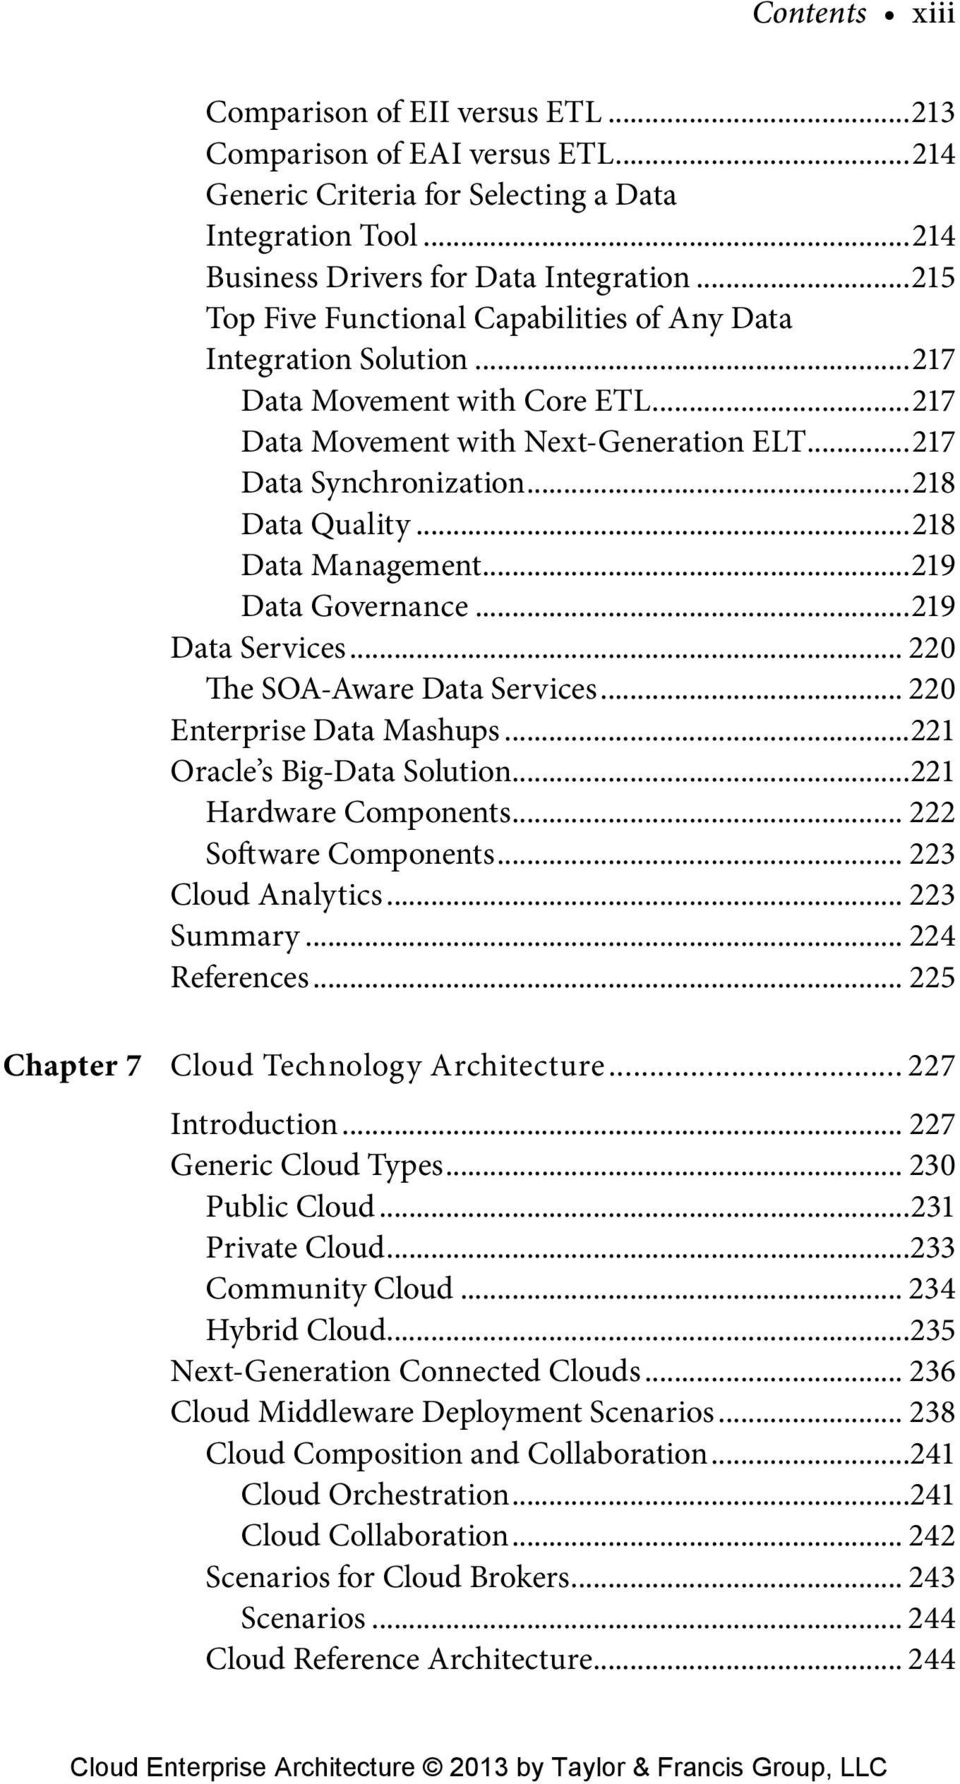 ..218 Data Management...219 Data Governance...219 Data Services... 220 The SOA-Aware Data Services... 220 Enterprise Data Mashups...221 Oracle s Big-Data Solution...221 Hardware Components.